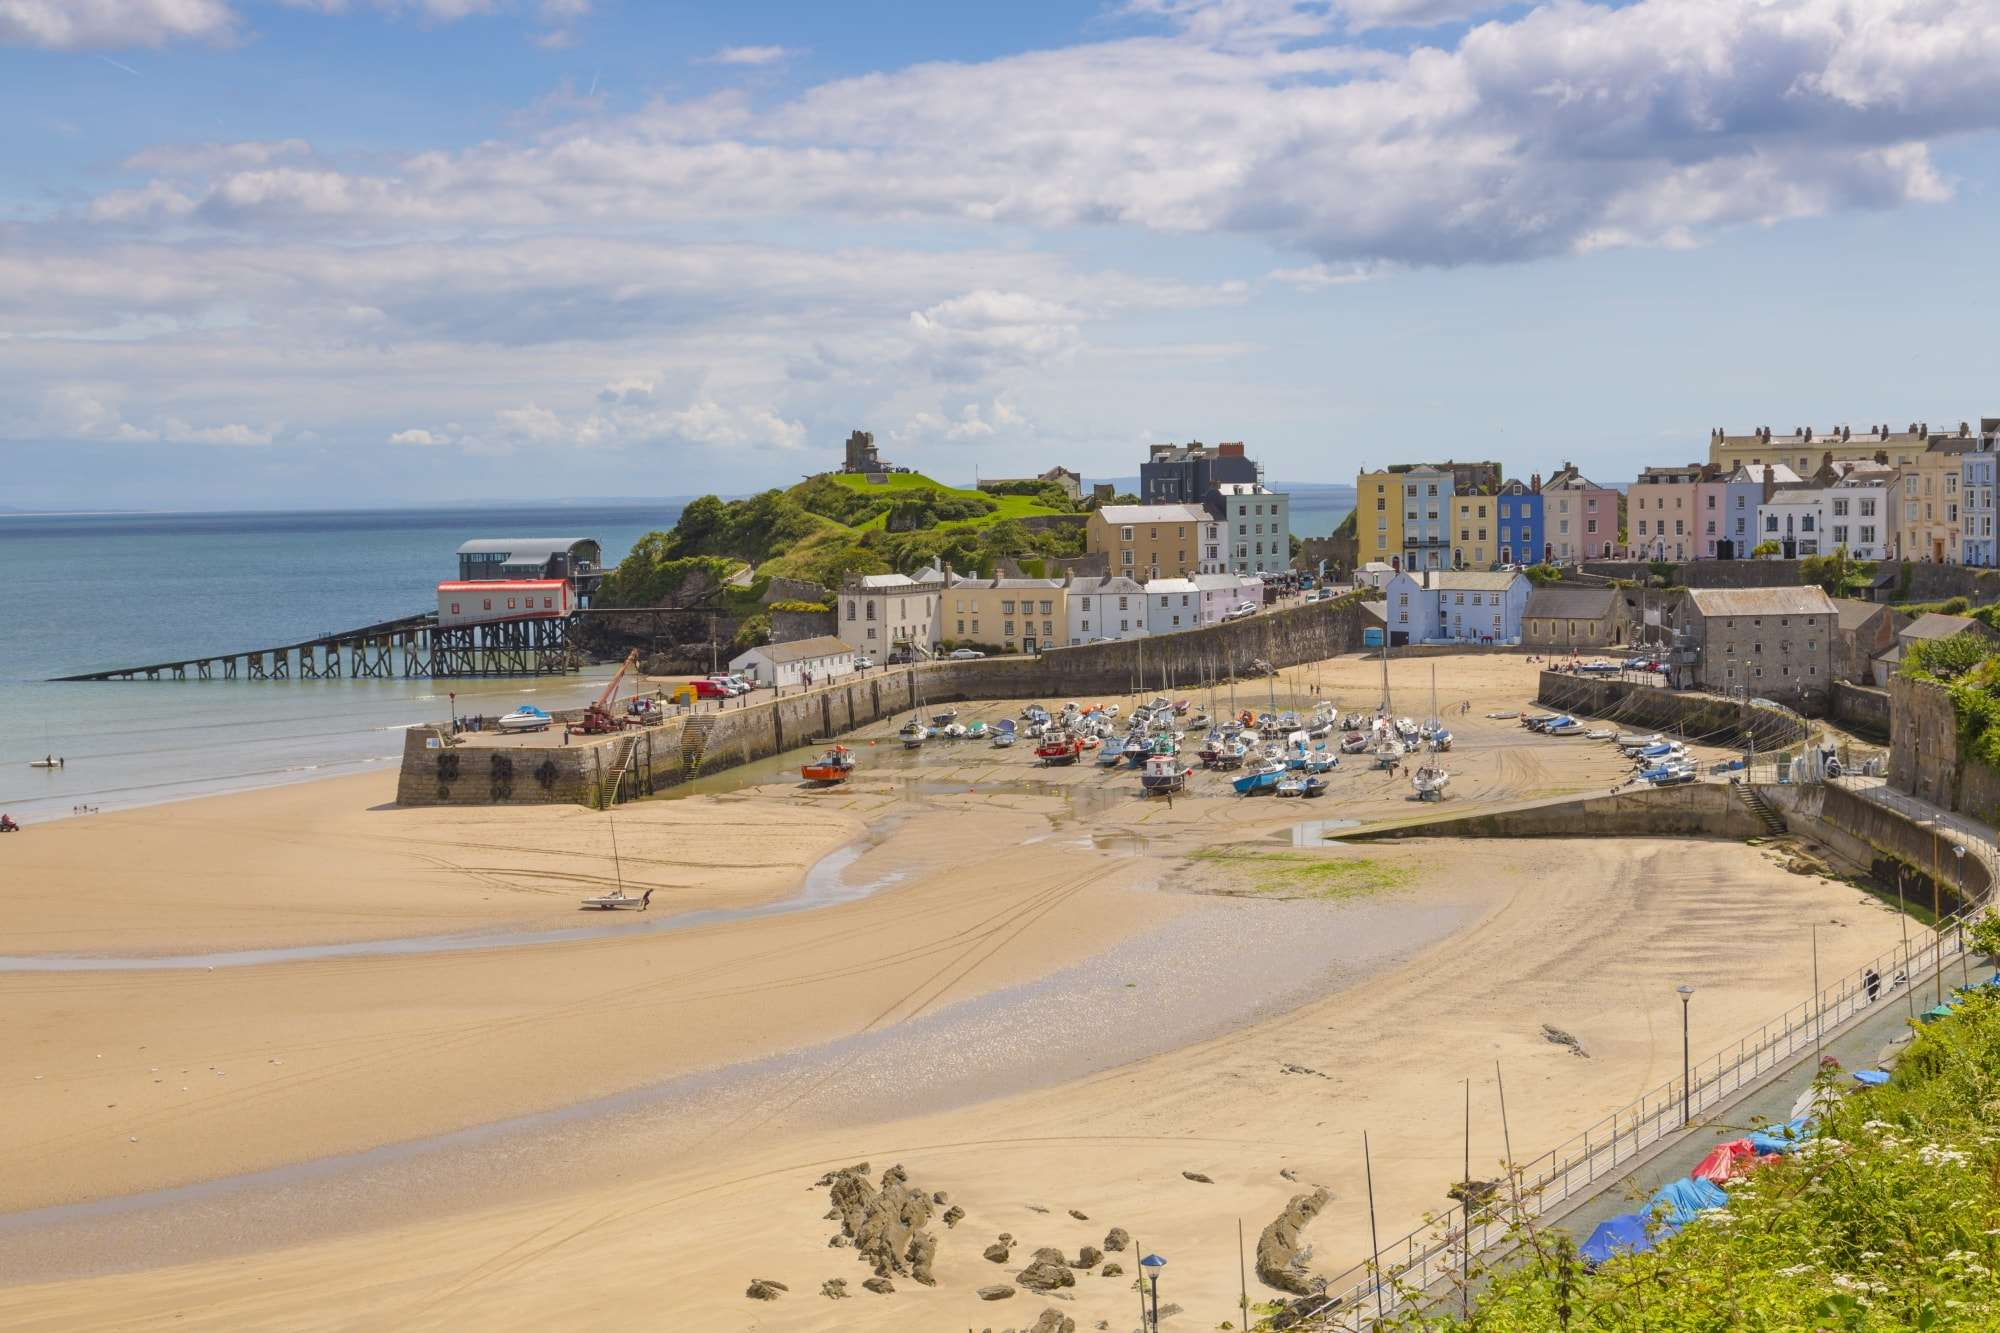 Image of Tenby beach, Cardigan Bay, Wales